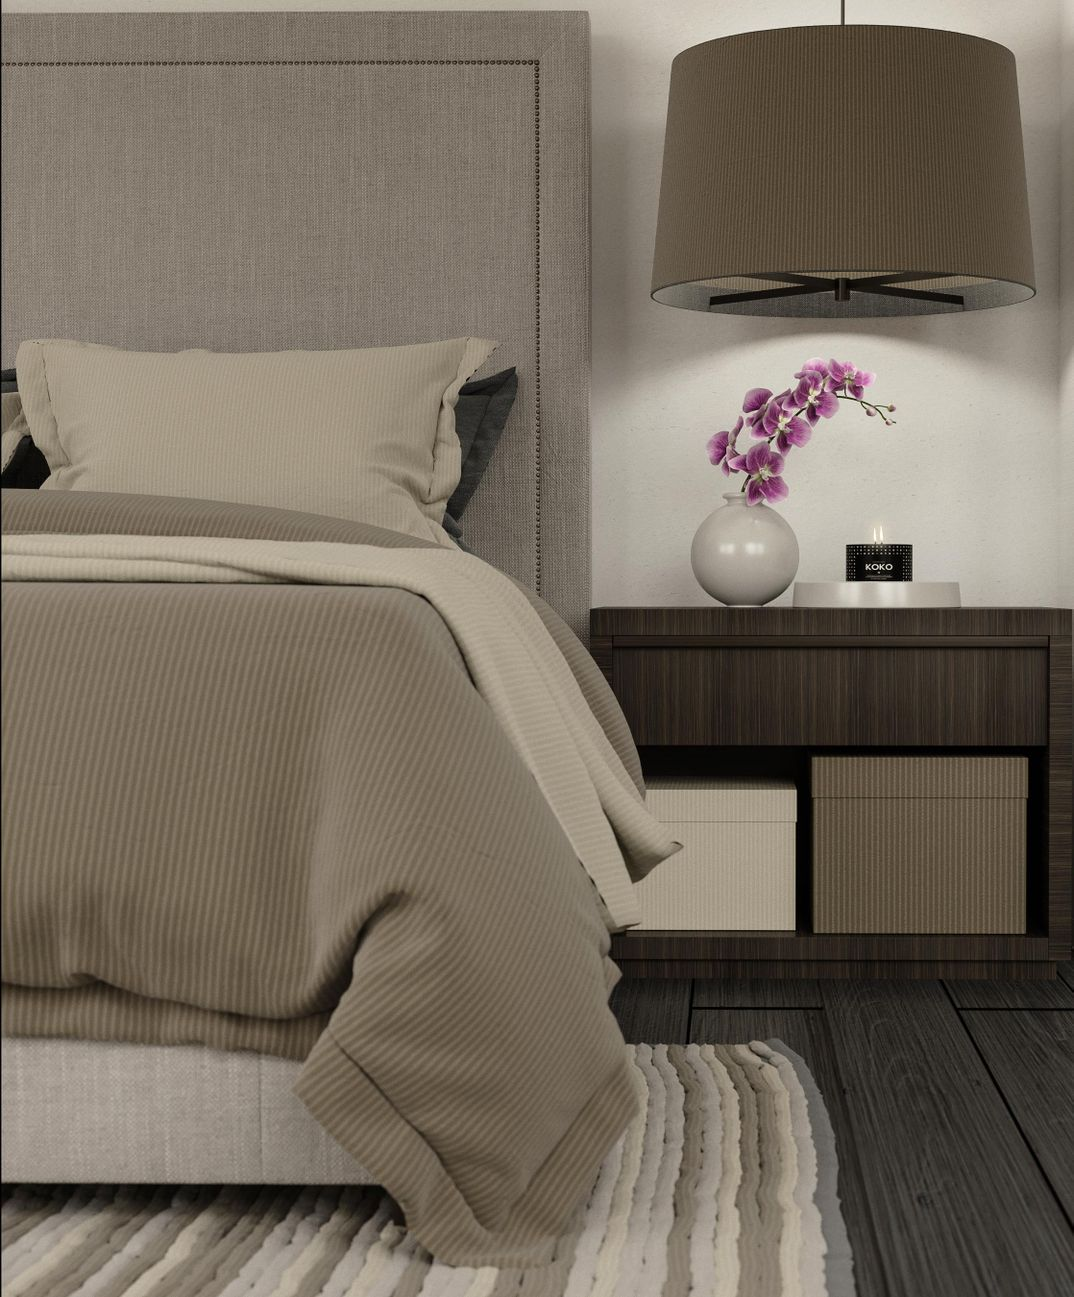 Bedroom RH detail render Corona